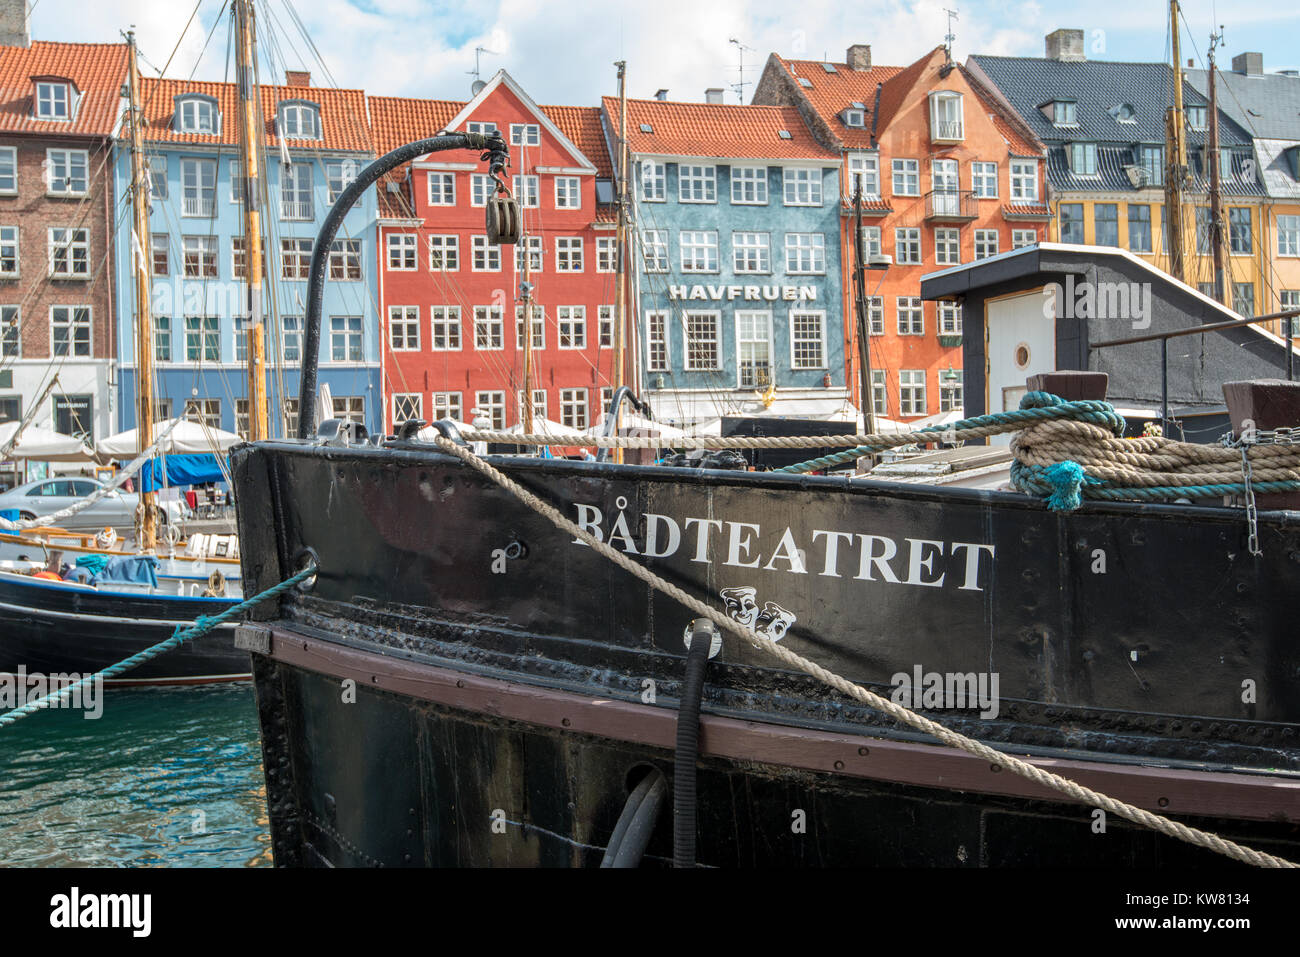 Boat theater at Nyhavn, a 17th century harbor district in Copenhagen and a popular waterfront tourist attraction - Stock Image